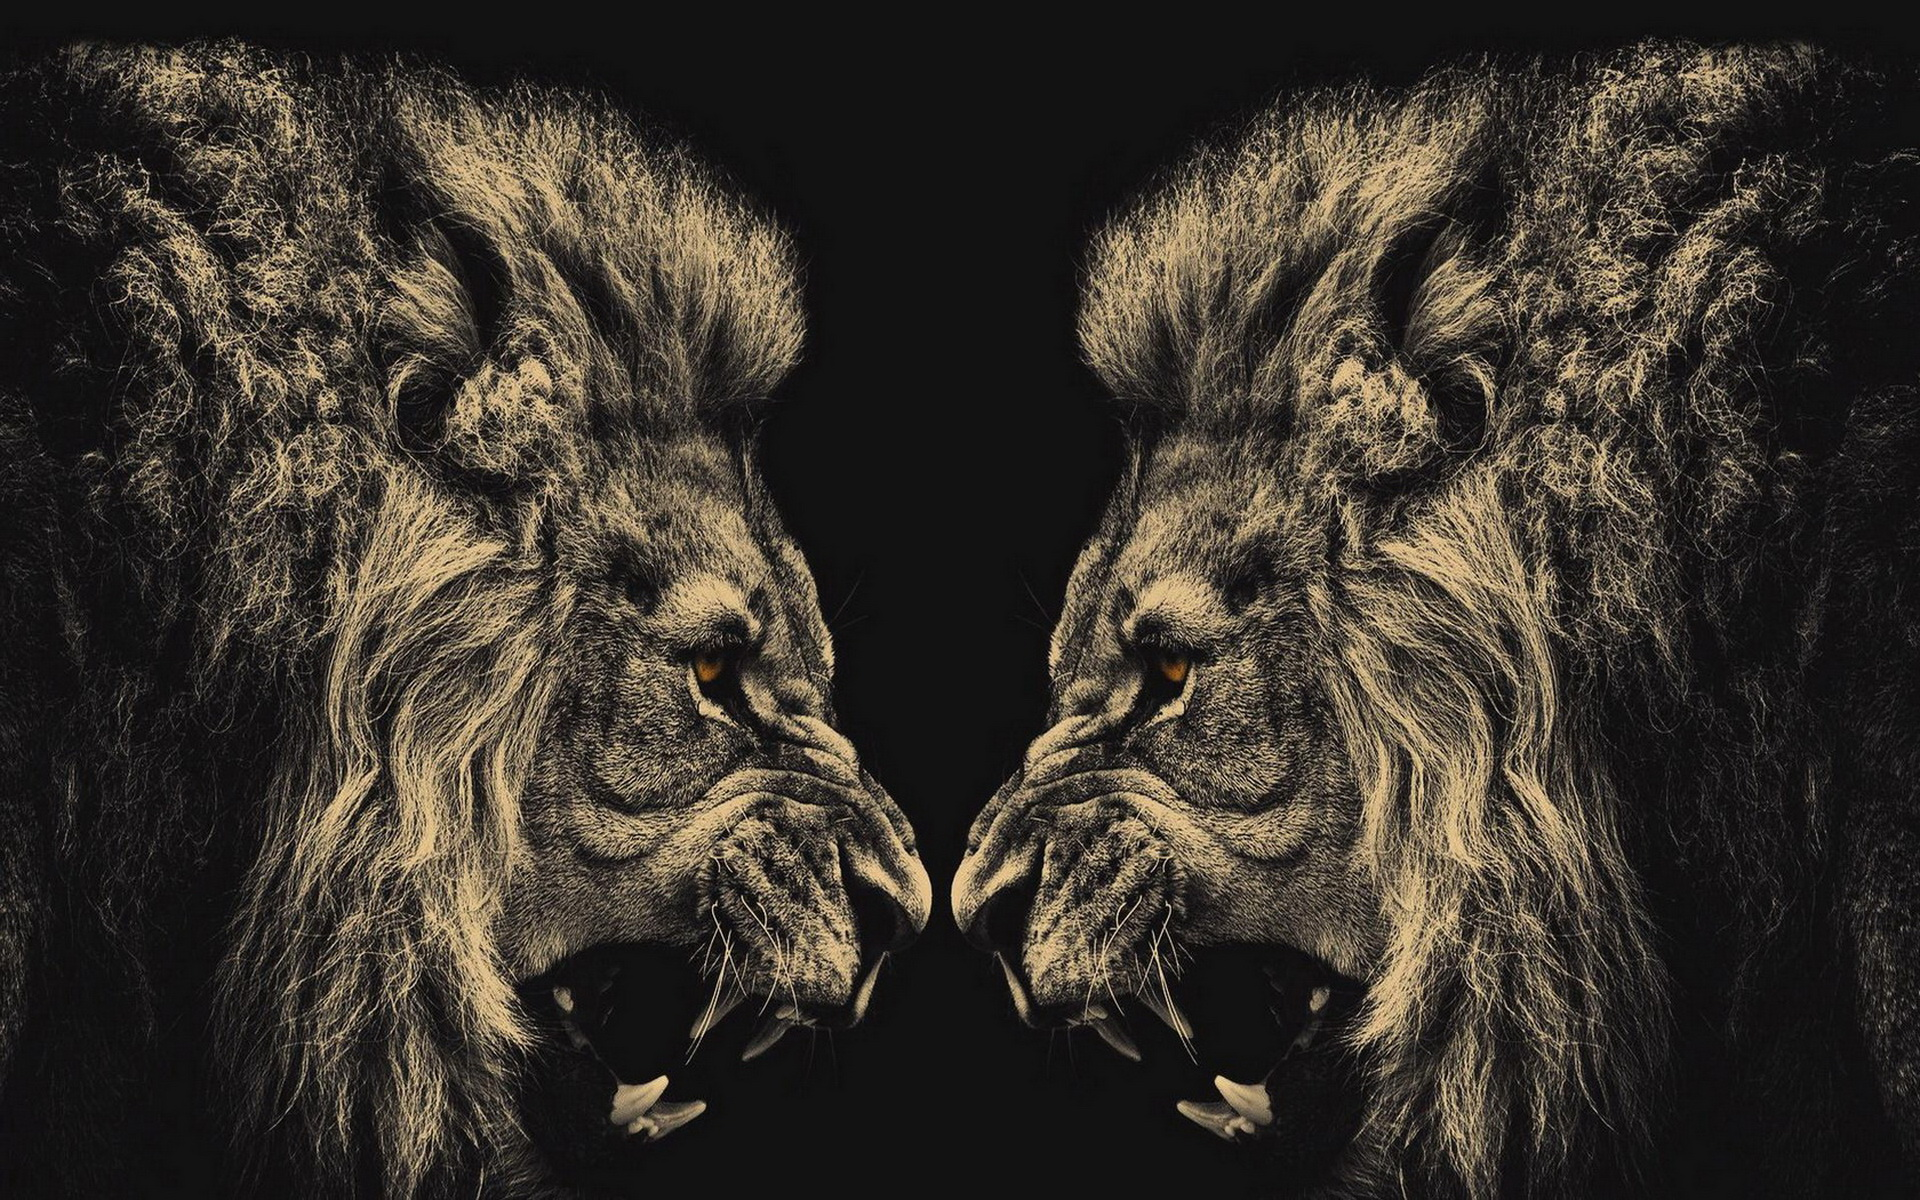 lion wallpaper screensaver hd #10258 wallpaper | walldiskpaper